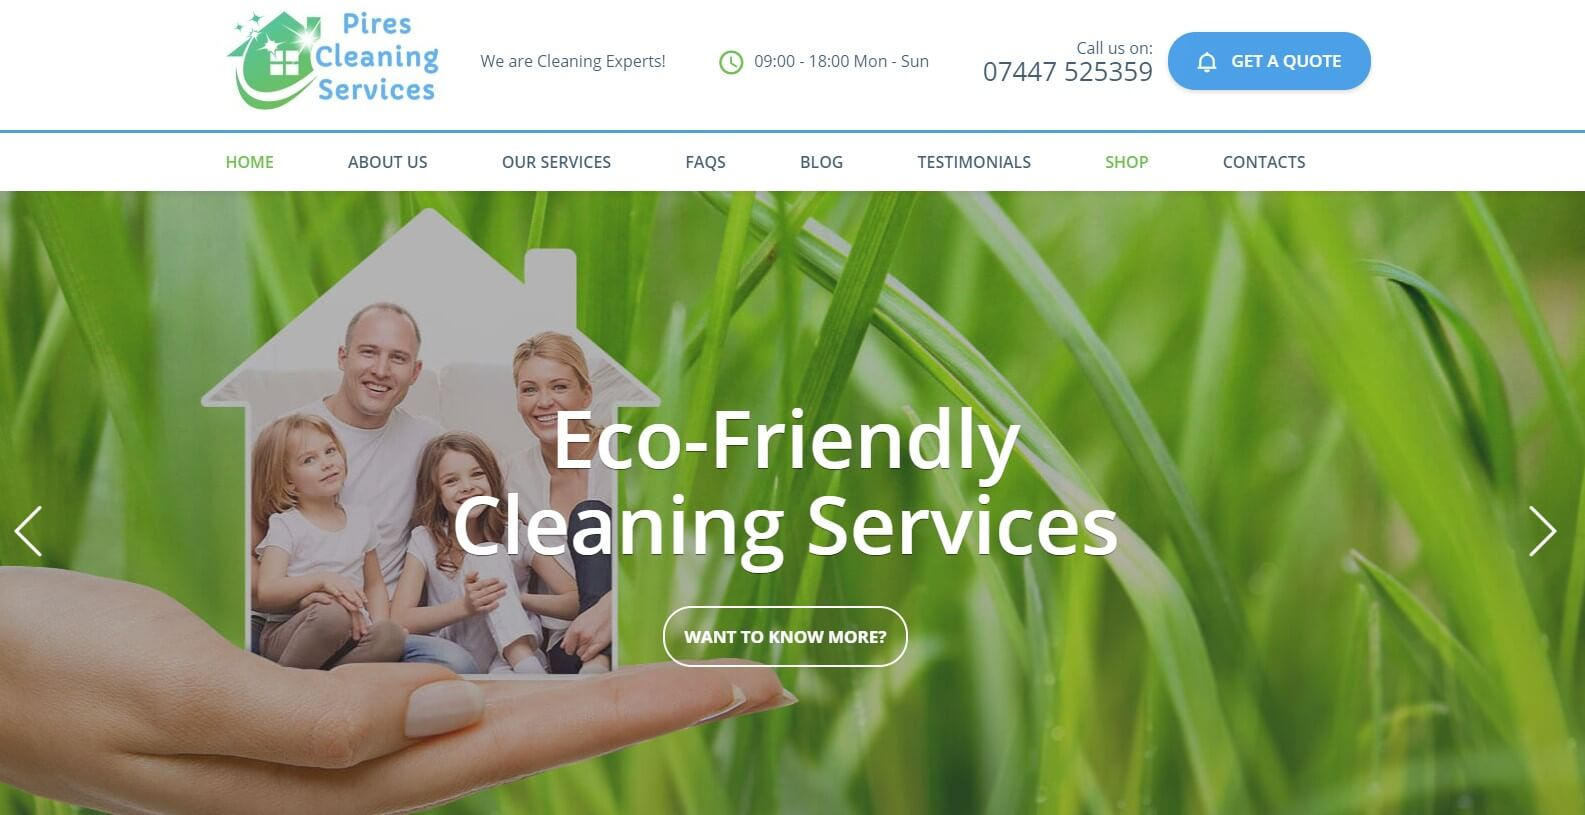 pirescleaningservices